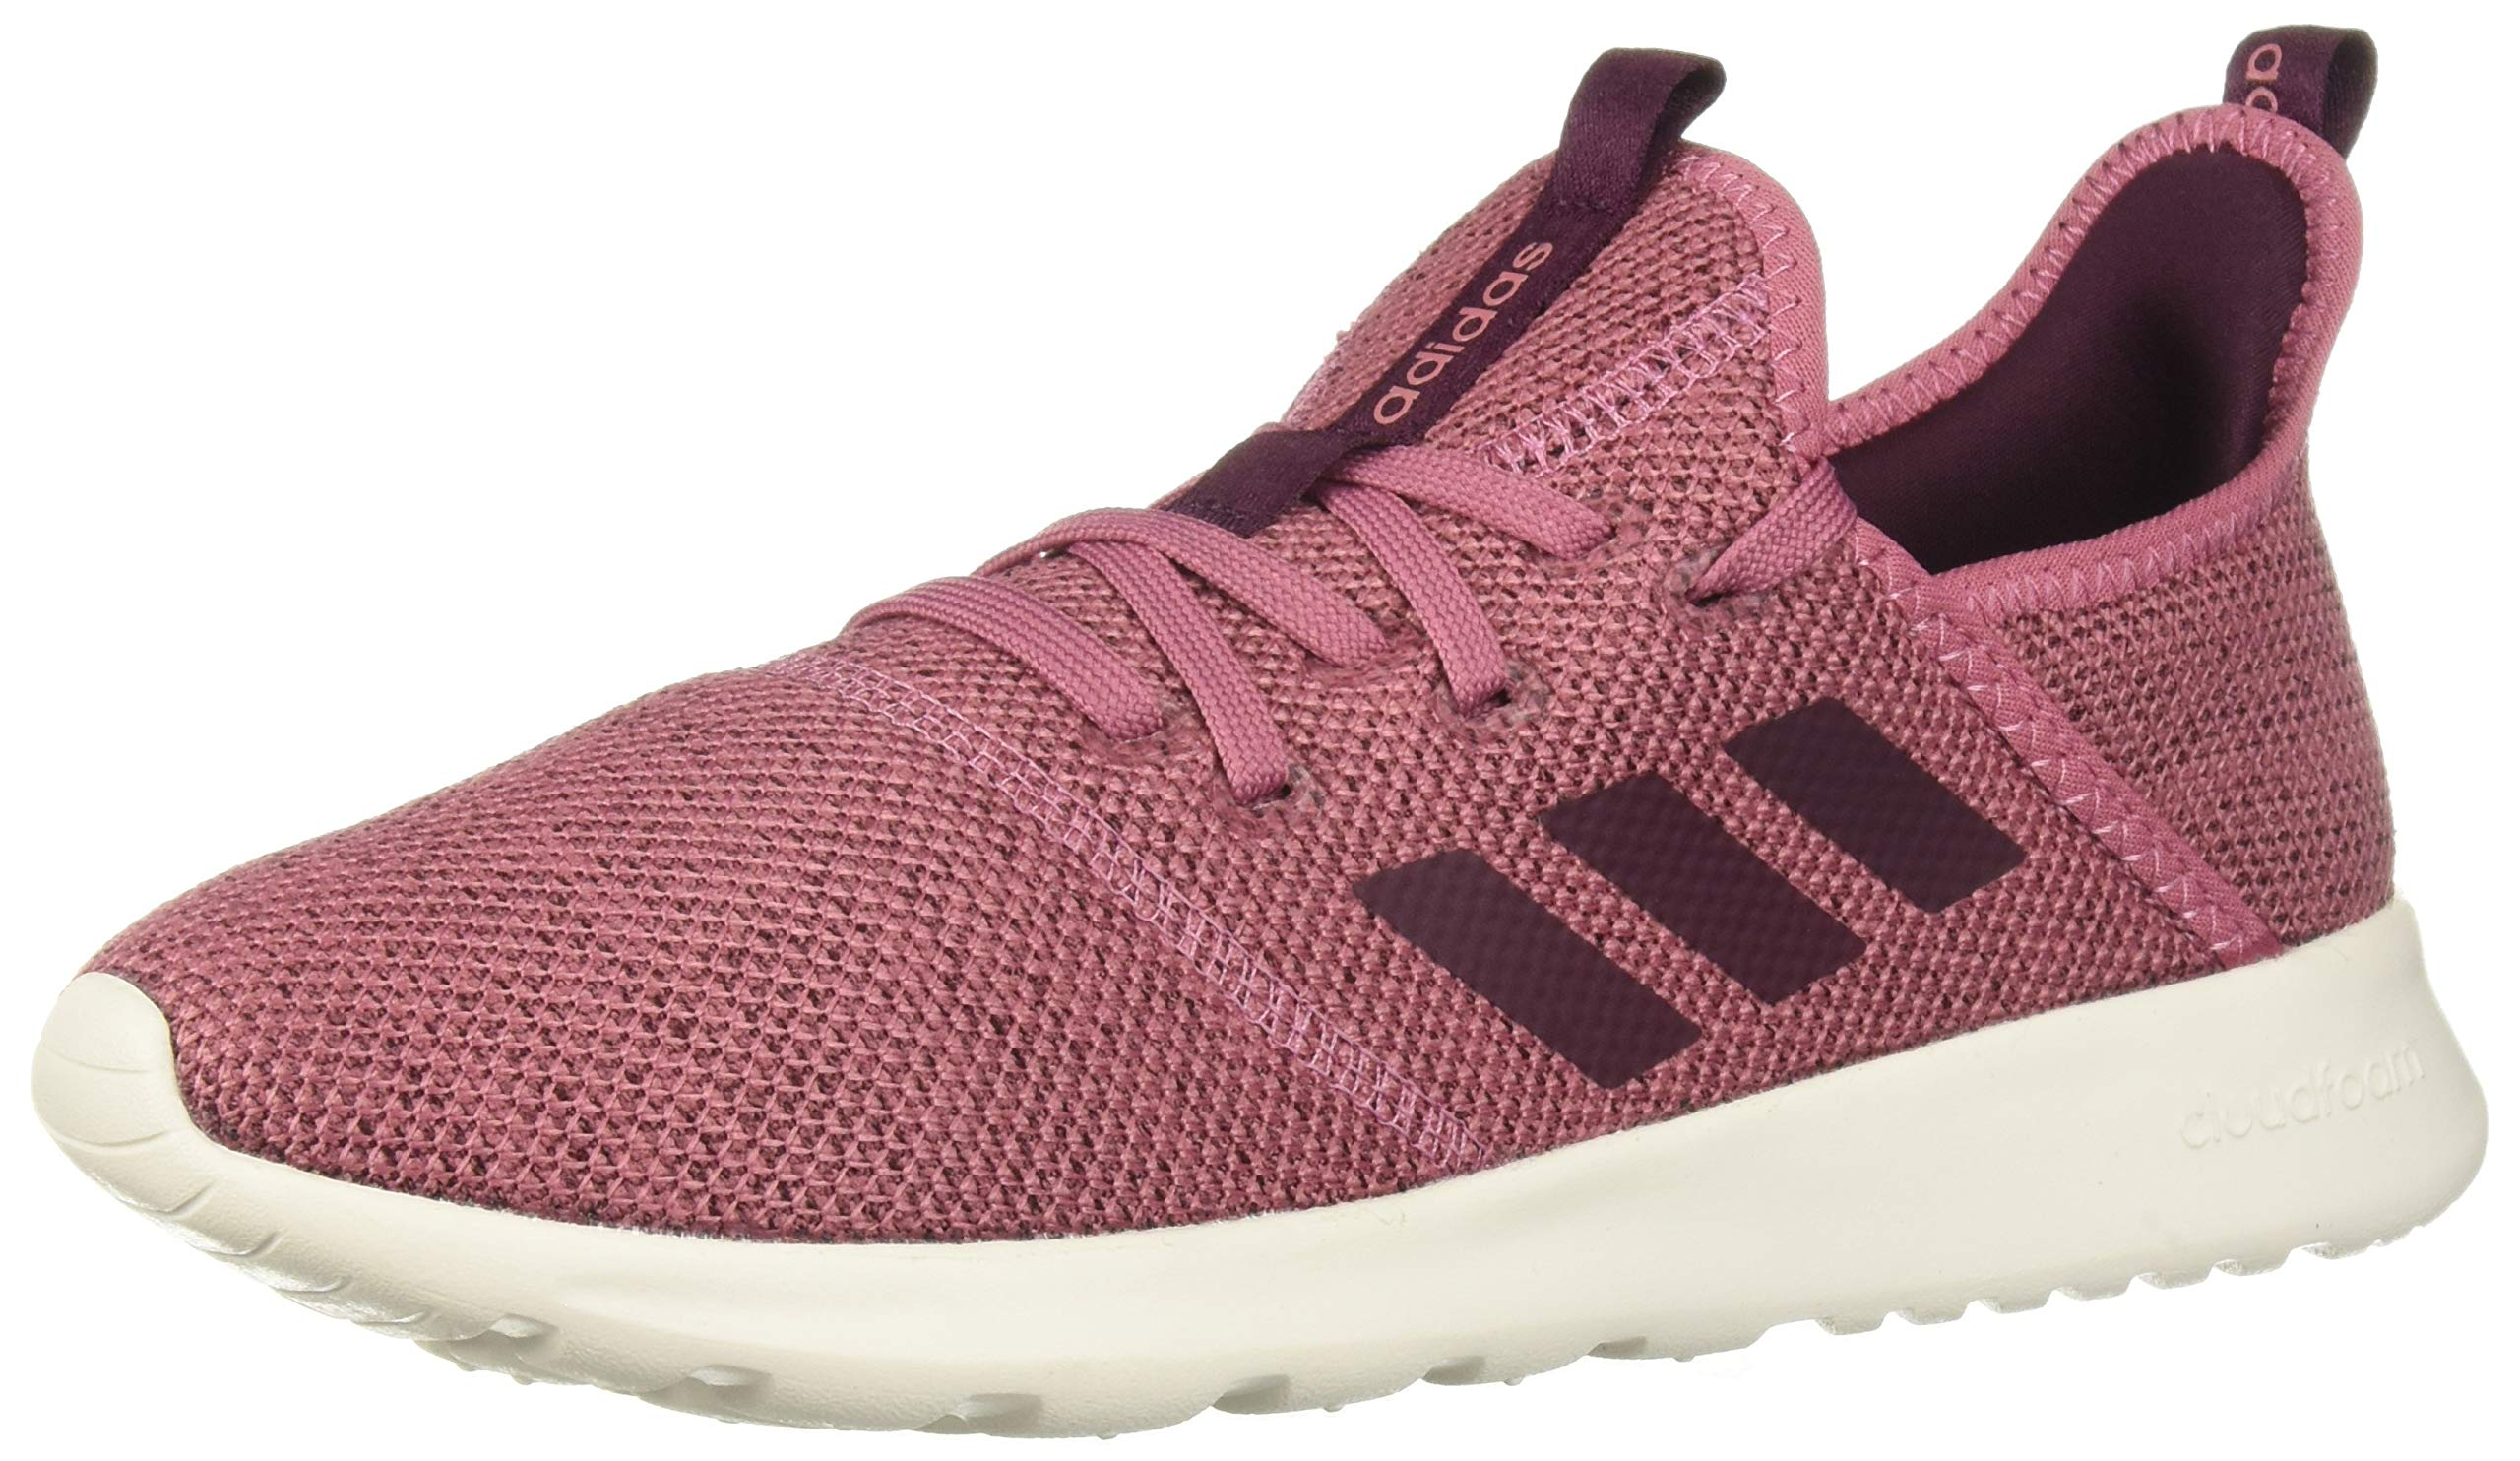 adidas Performance Women's Cloudfoam Pure Running Shoe, Maroon/Maroon/White, 5 M US